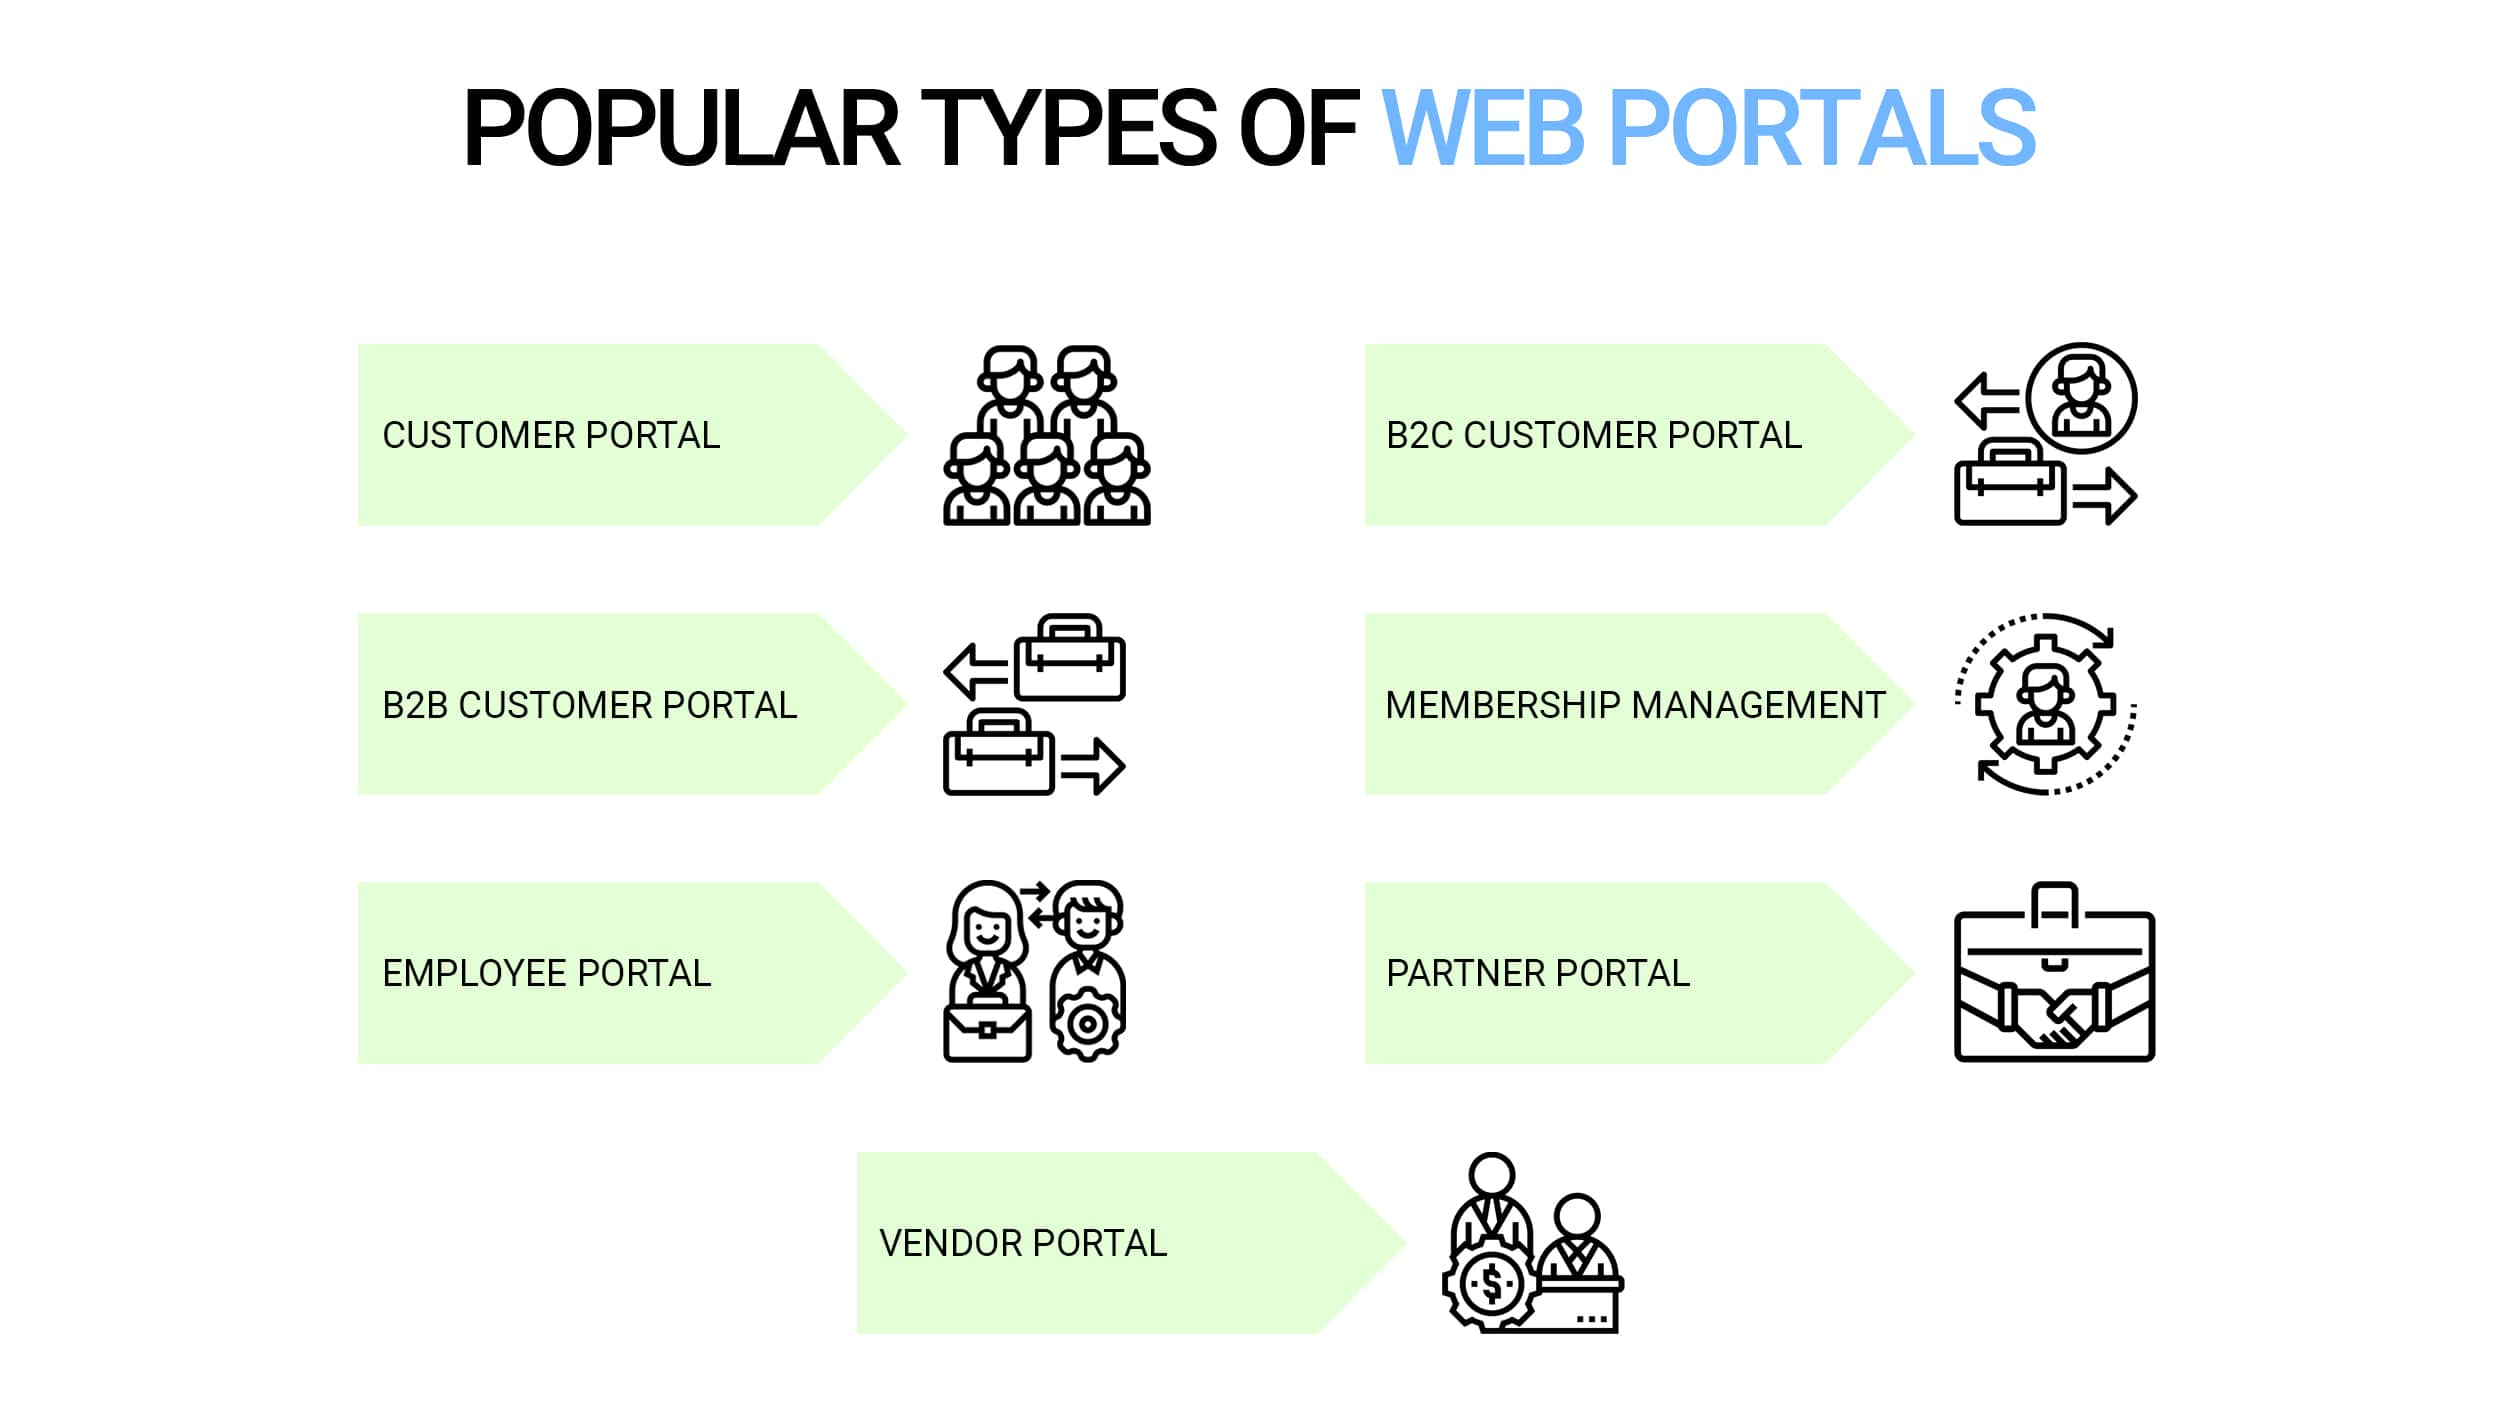 Types of web portals